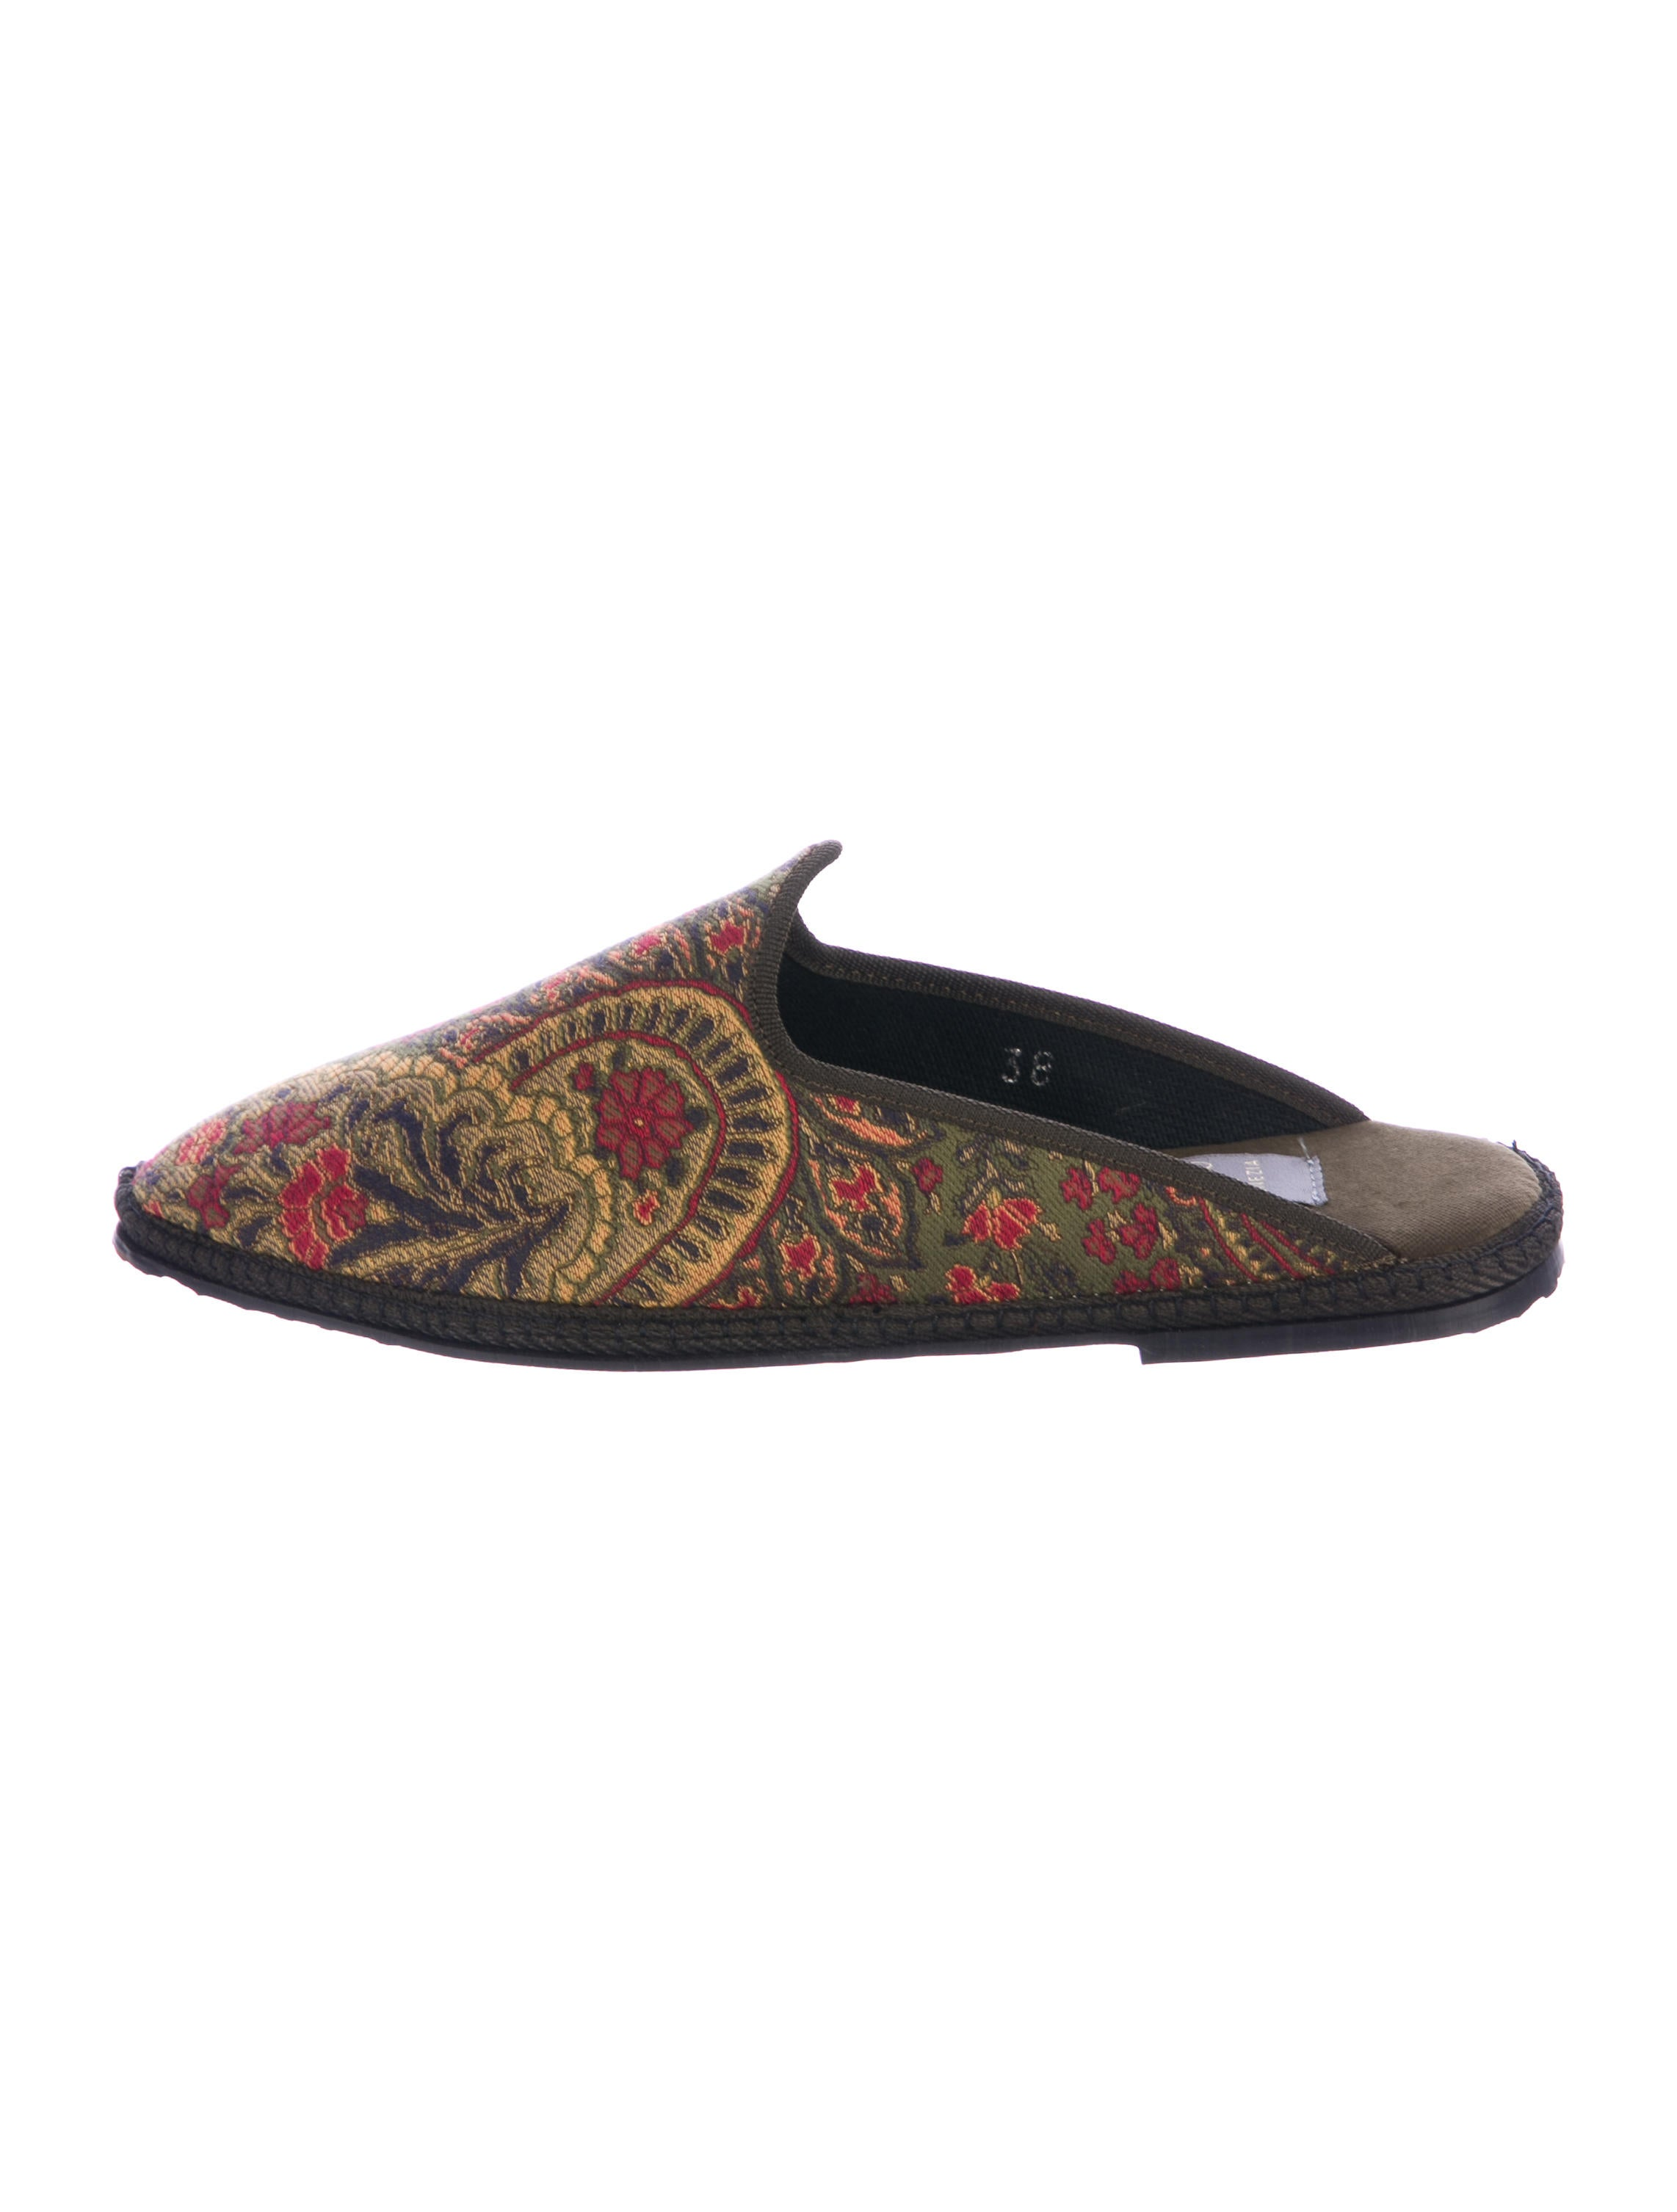 discount codes really cheap Fifi Venezia Jacquard Pointed-Toe Mules w/ Tags original cheap price recommend IwNOmwf